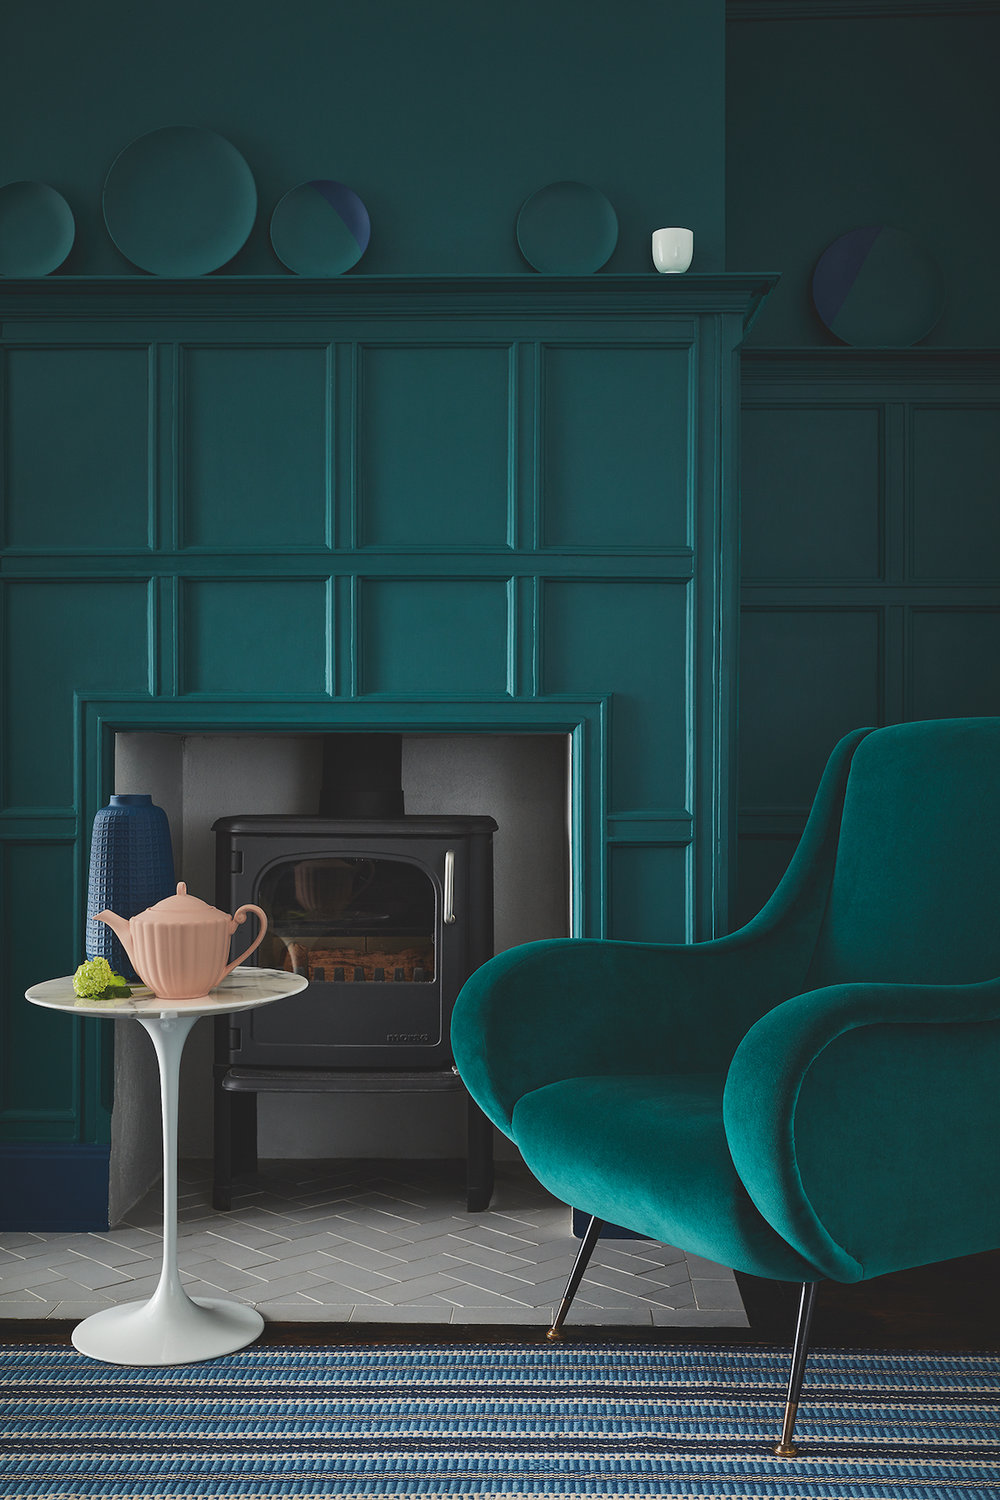 Wall And Panelling: Mid Azure Green 96, Skirting: Royal Navy 257